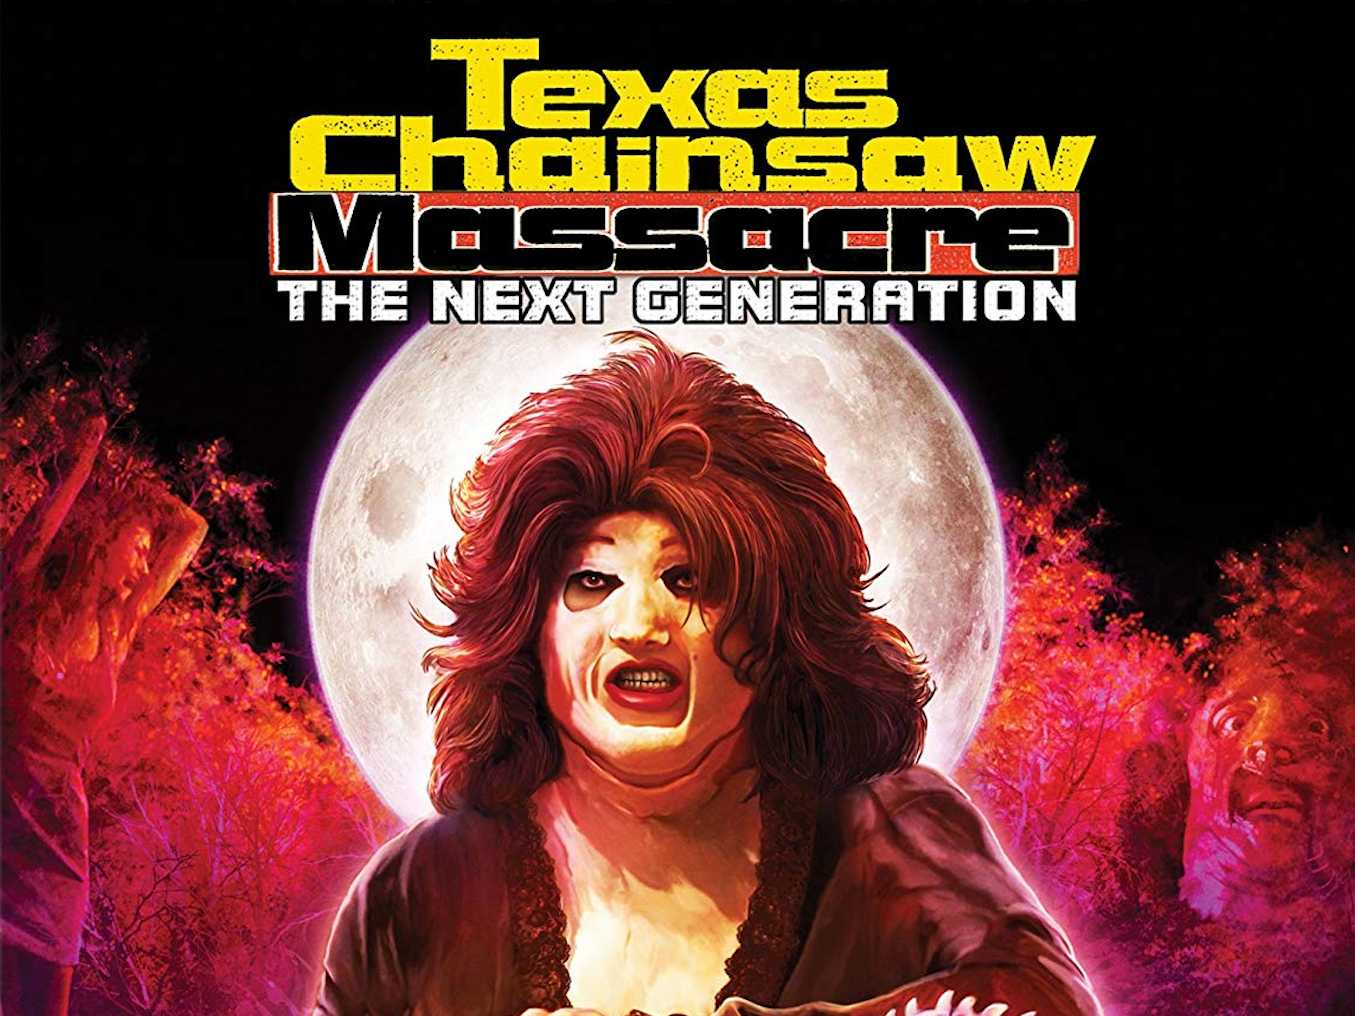 Texas Chainsaw Massacre: Next Gen' Collector's Edition